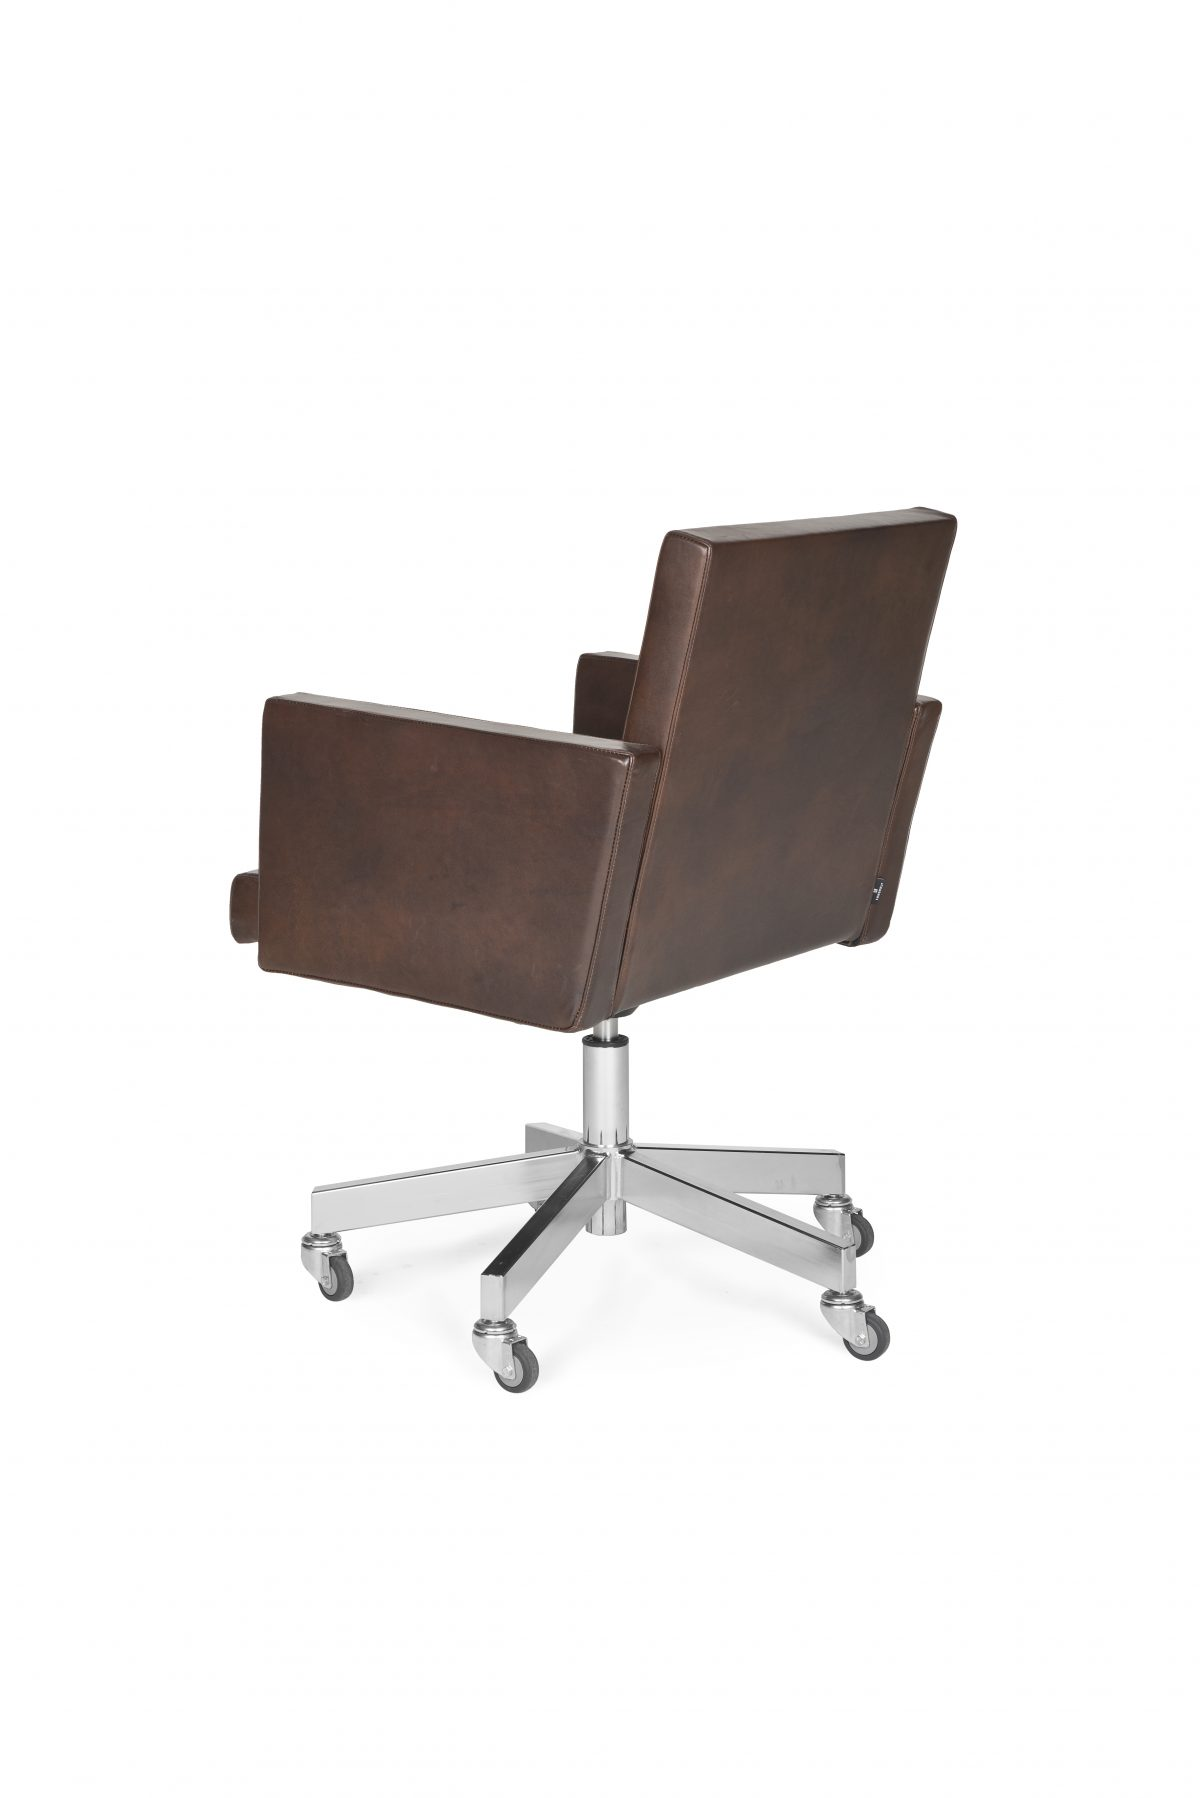 AVL office chair bureaustoel Old Saddle leer Lensvelt – gimmii shop